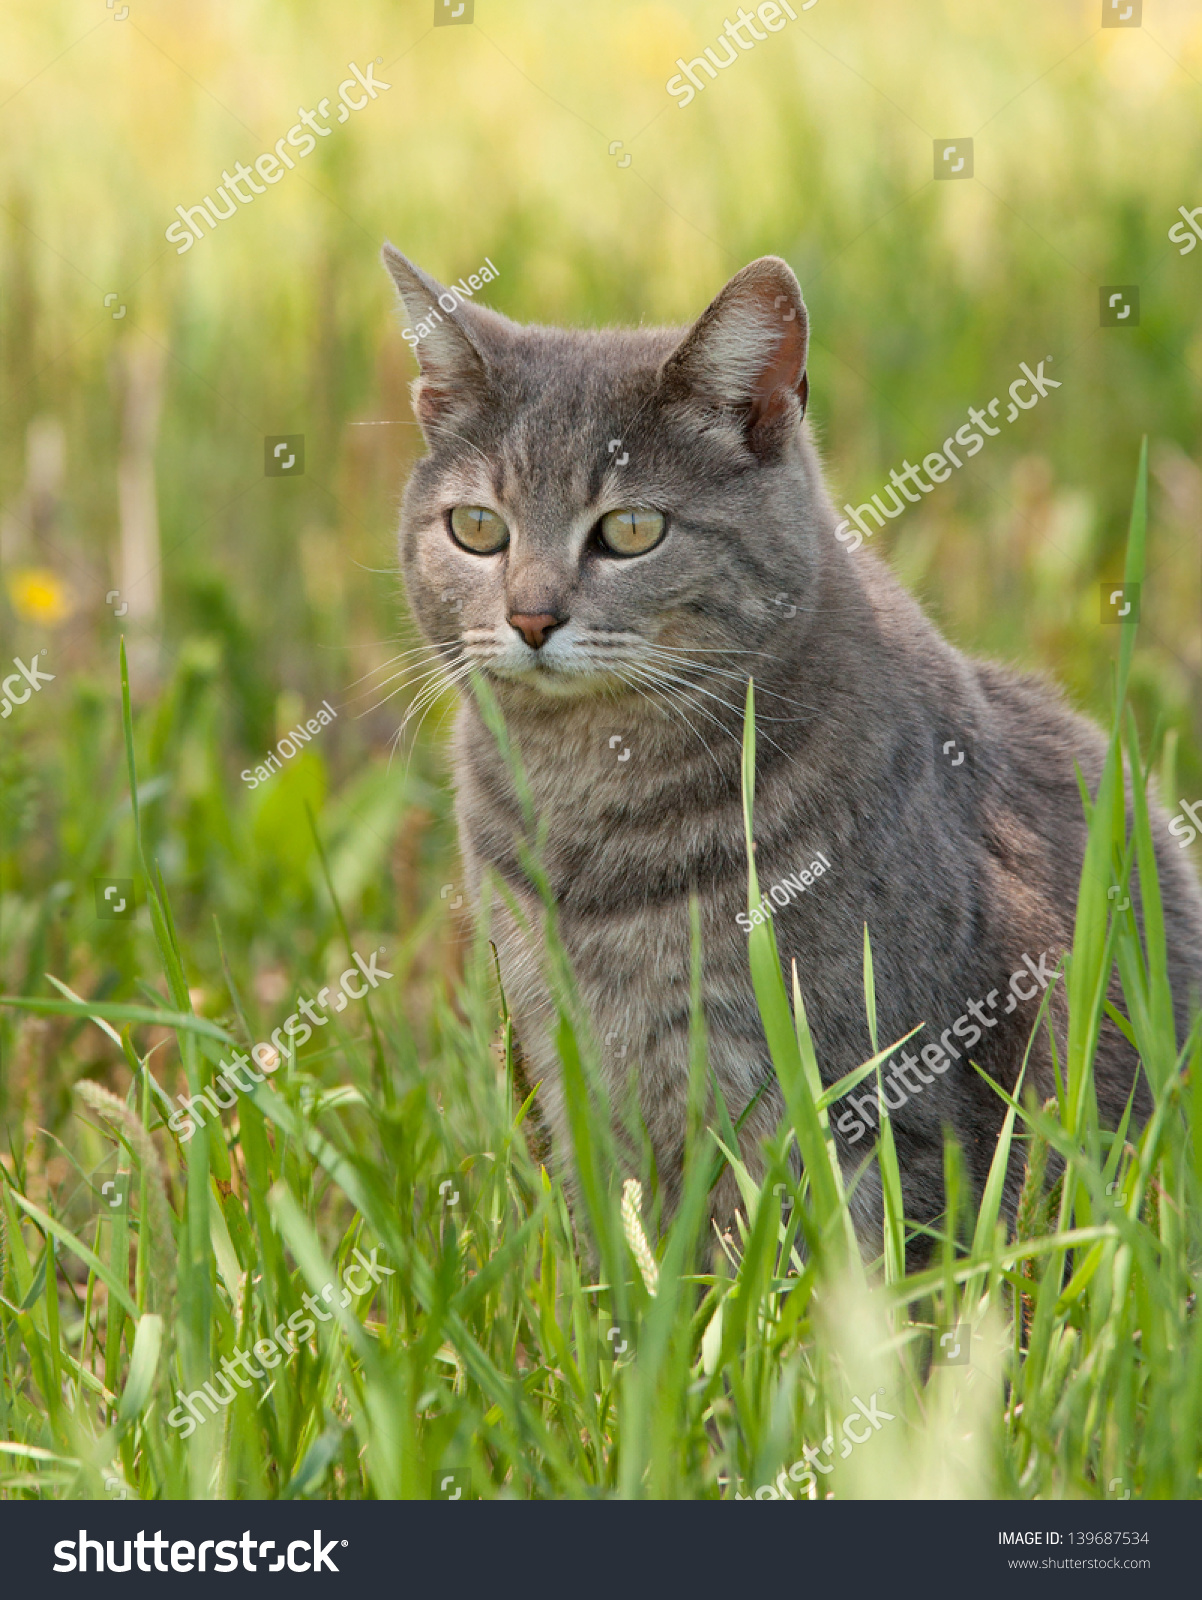 stock-photo-blue-tabby-cat-sitting-in-th